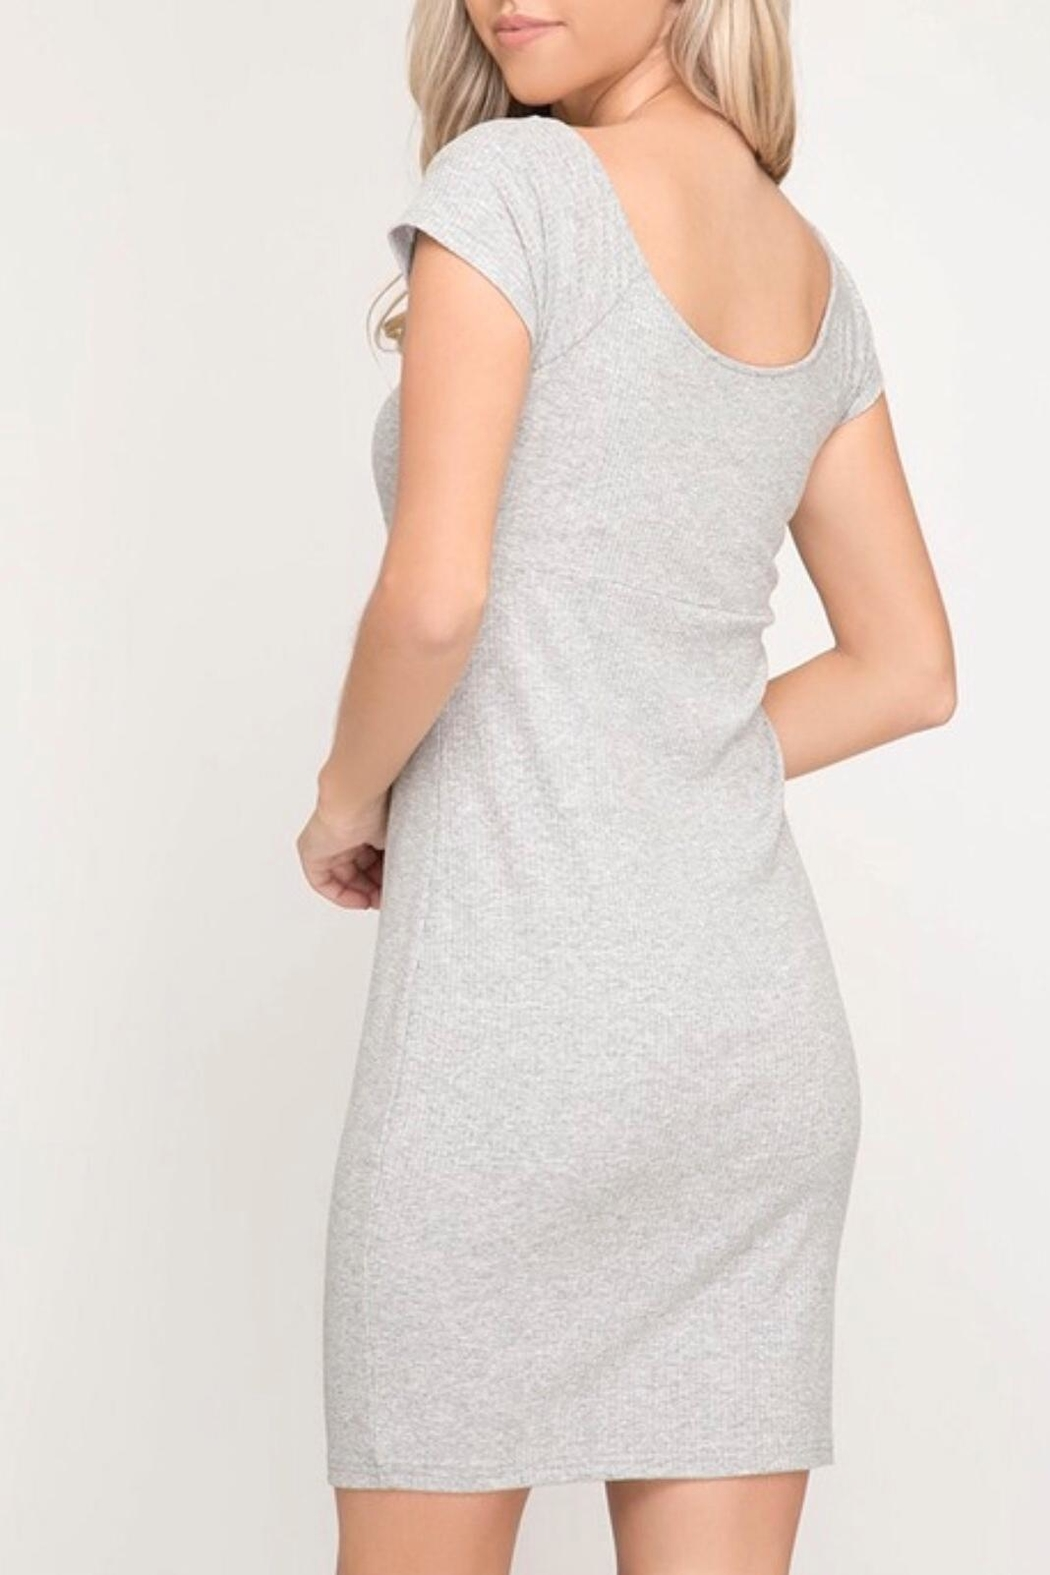 She + Sky Grey Bodycon Dress - Front Full Image